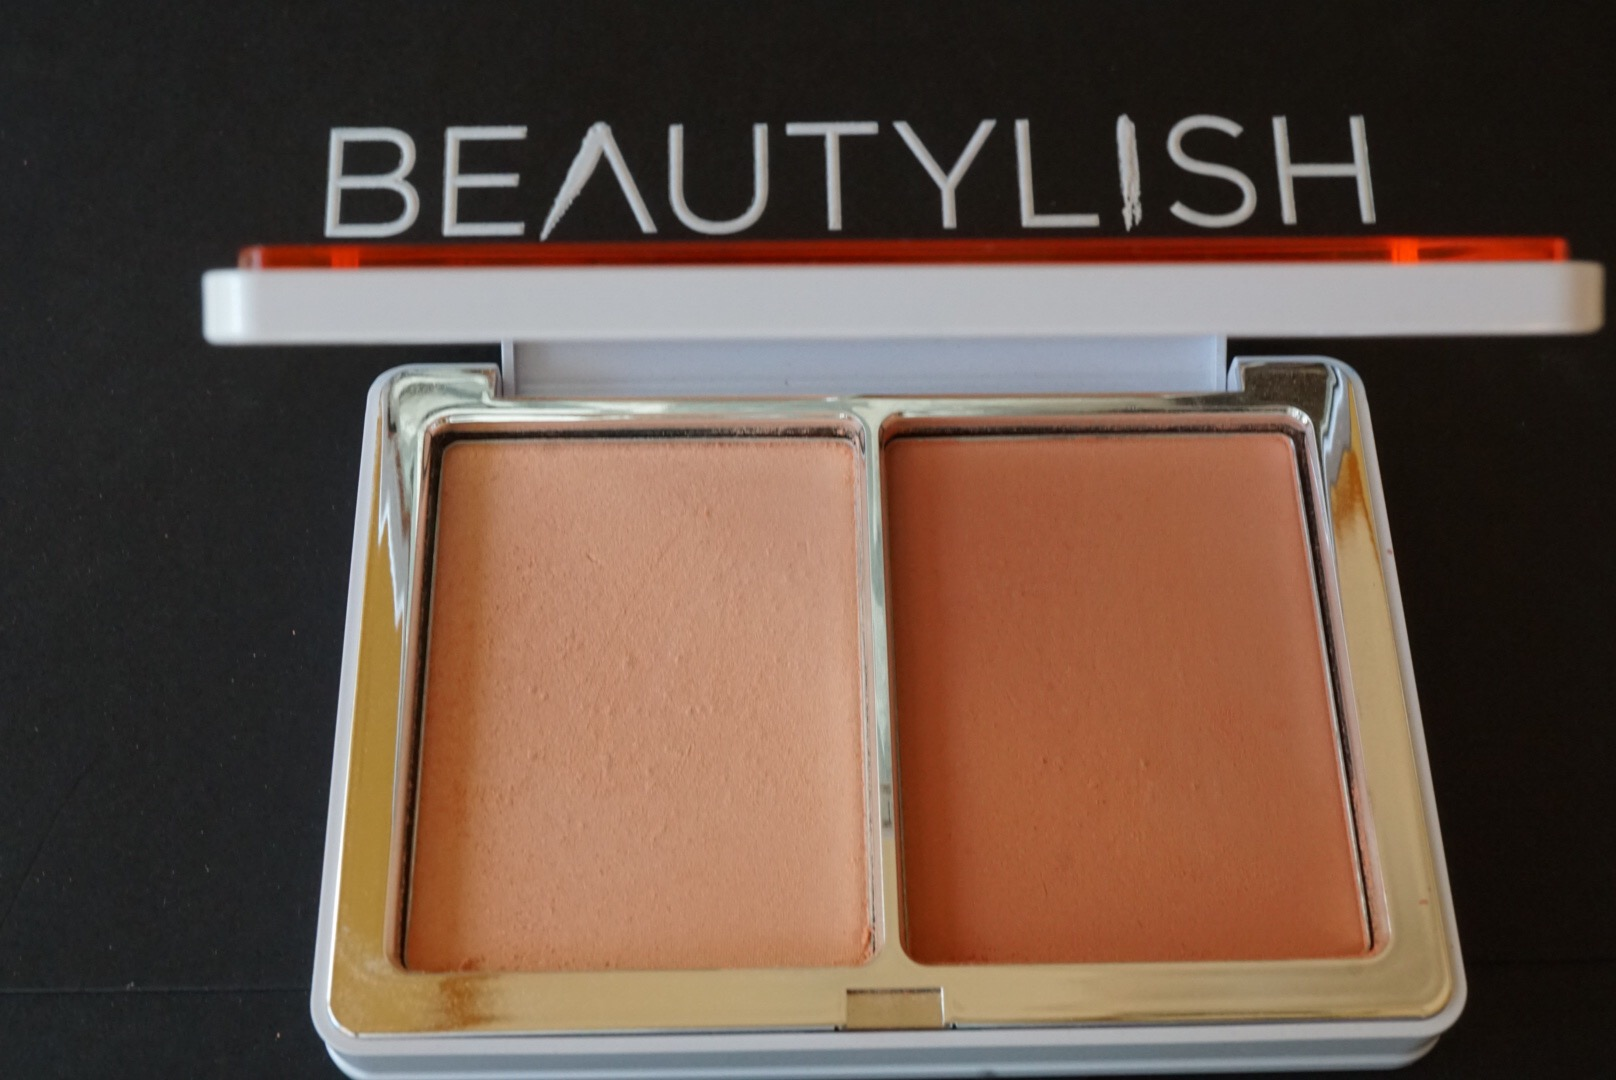 Natasha Denona Blushes Swatches Reviews Possibly The Longest La Girl Pro Face Hd Matte Pressed Powder Medium Biege 609 Peachy Nude Is Probably One Of My Favorites Its Very Natural Shade Flushed Cheeks Without It Being Pink I Have Red Undertones